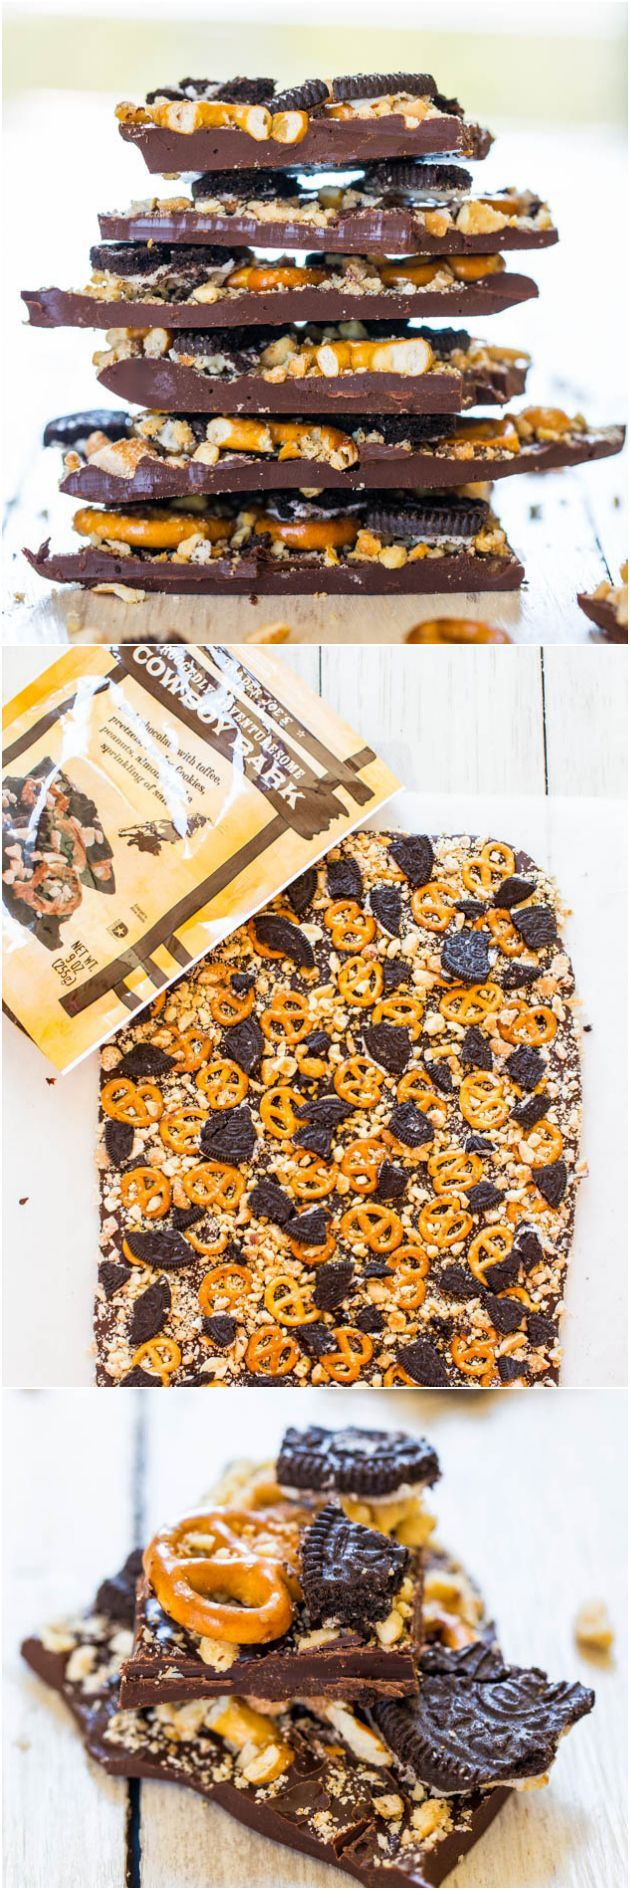 Cowboy Bark: Trader Joe's Copycat Recipe - Just like the real thing & ready in 5 minutes. Salty-and-sweet & supremely good!: Cowboy Recipes, Joe Copycat, Cowboy Bark Recipe, The Real, Salty And Sweets Supreme, Things Ready, Trader Joe, Real Things, Copycat Recipes